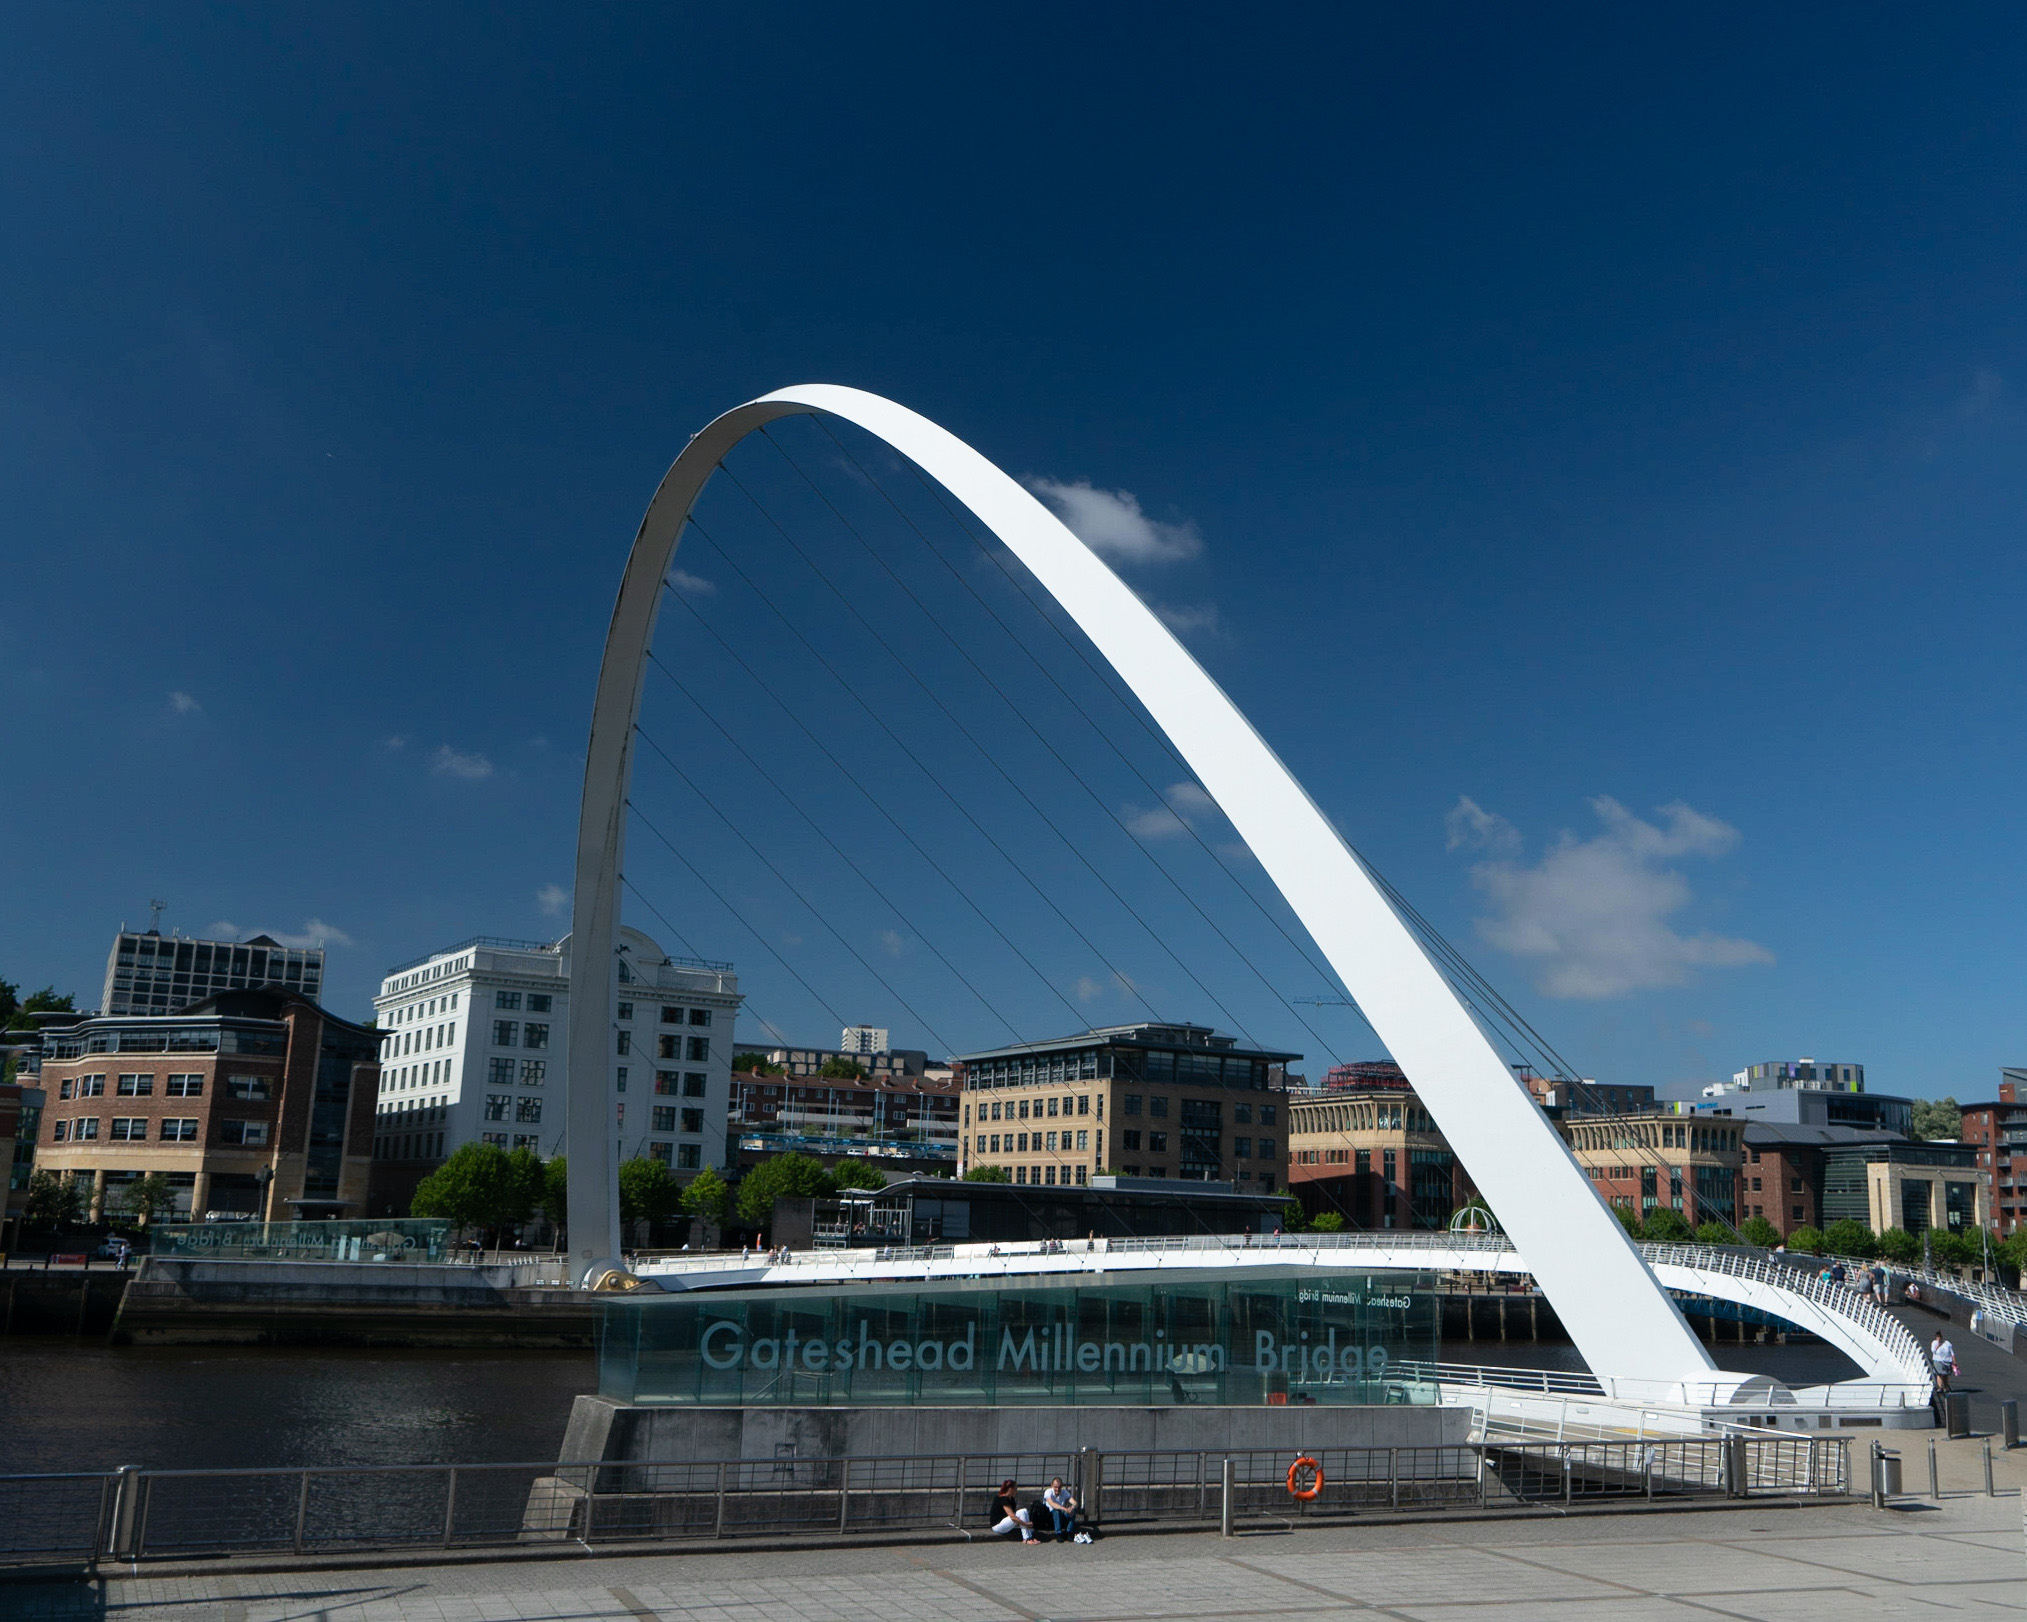 #bridge, #Newcastle, #gateshead, #millenium, #pivot, #pedestrian, #transformation, #entrepreneurial, #university, #pubs, #travel